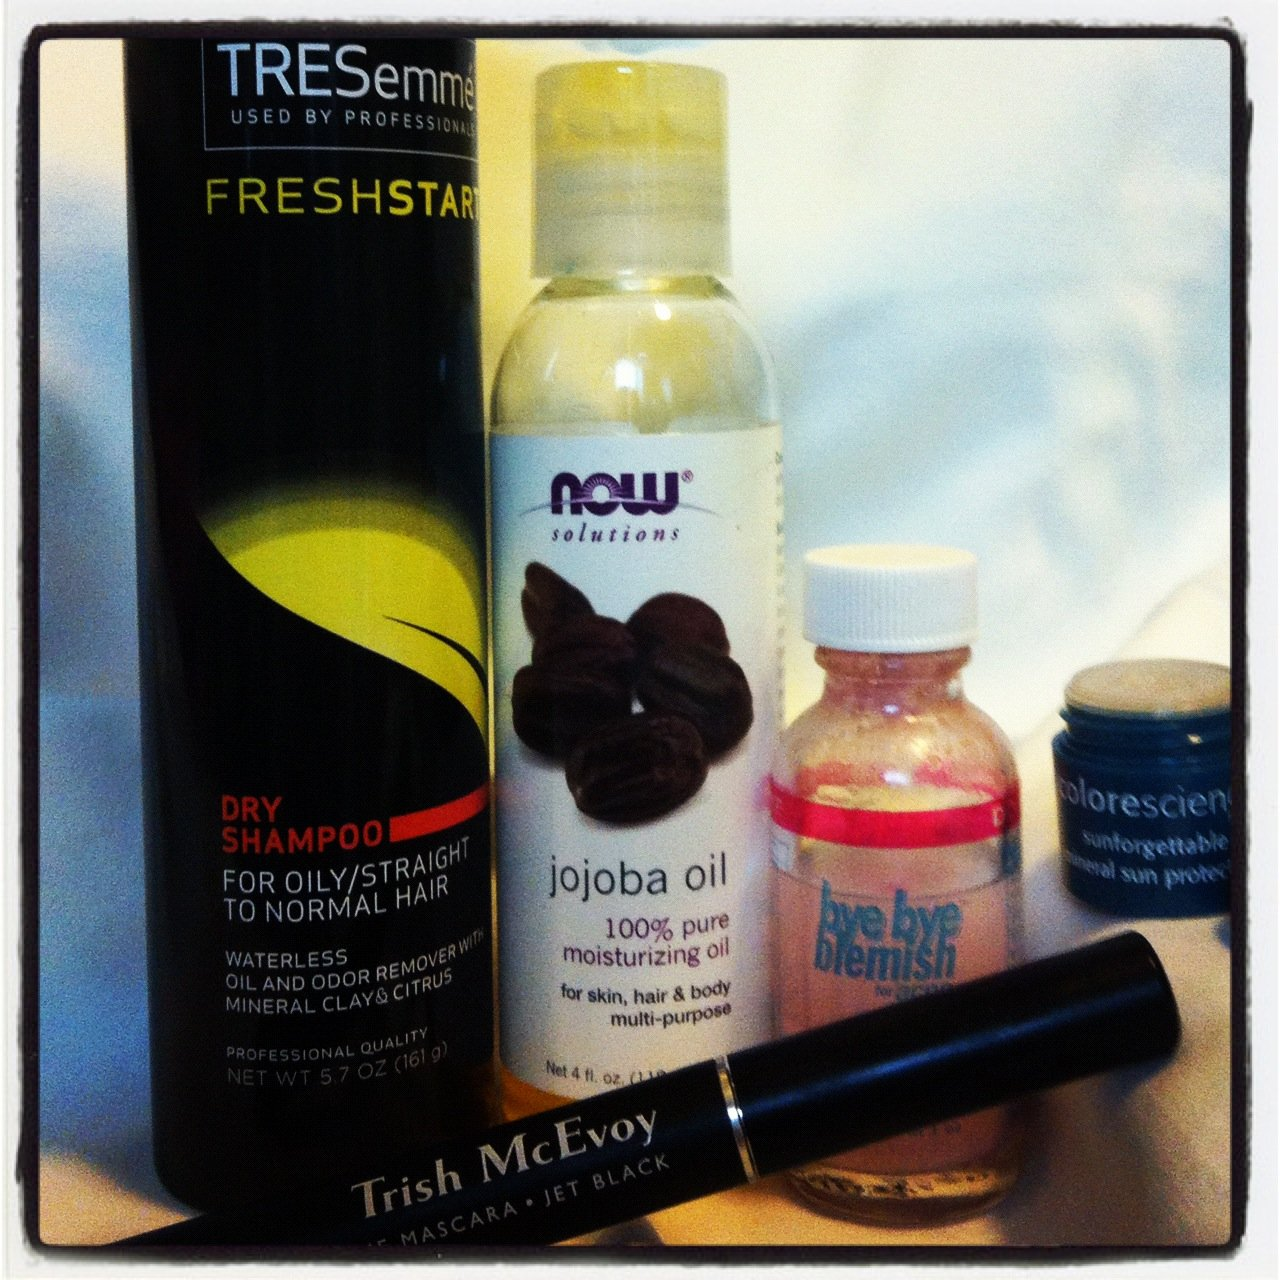 My Top 5 Favorite (Never Go Without) Beauty Products